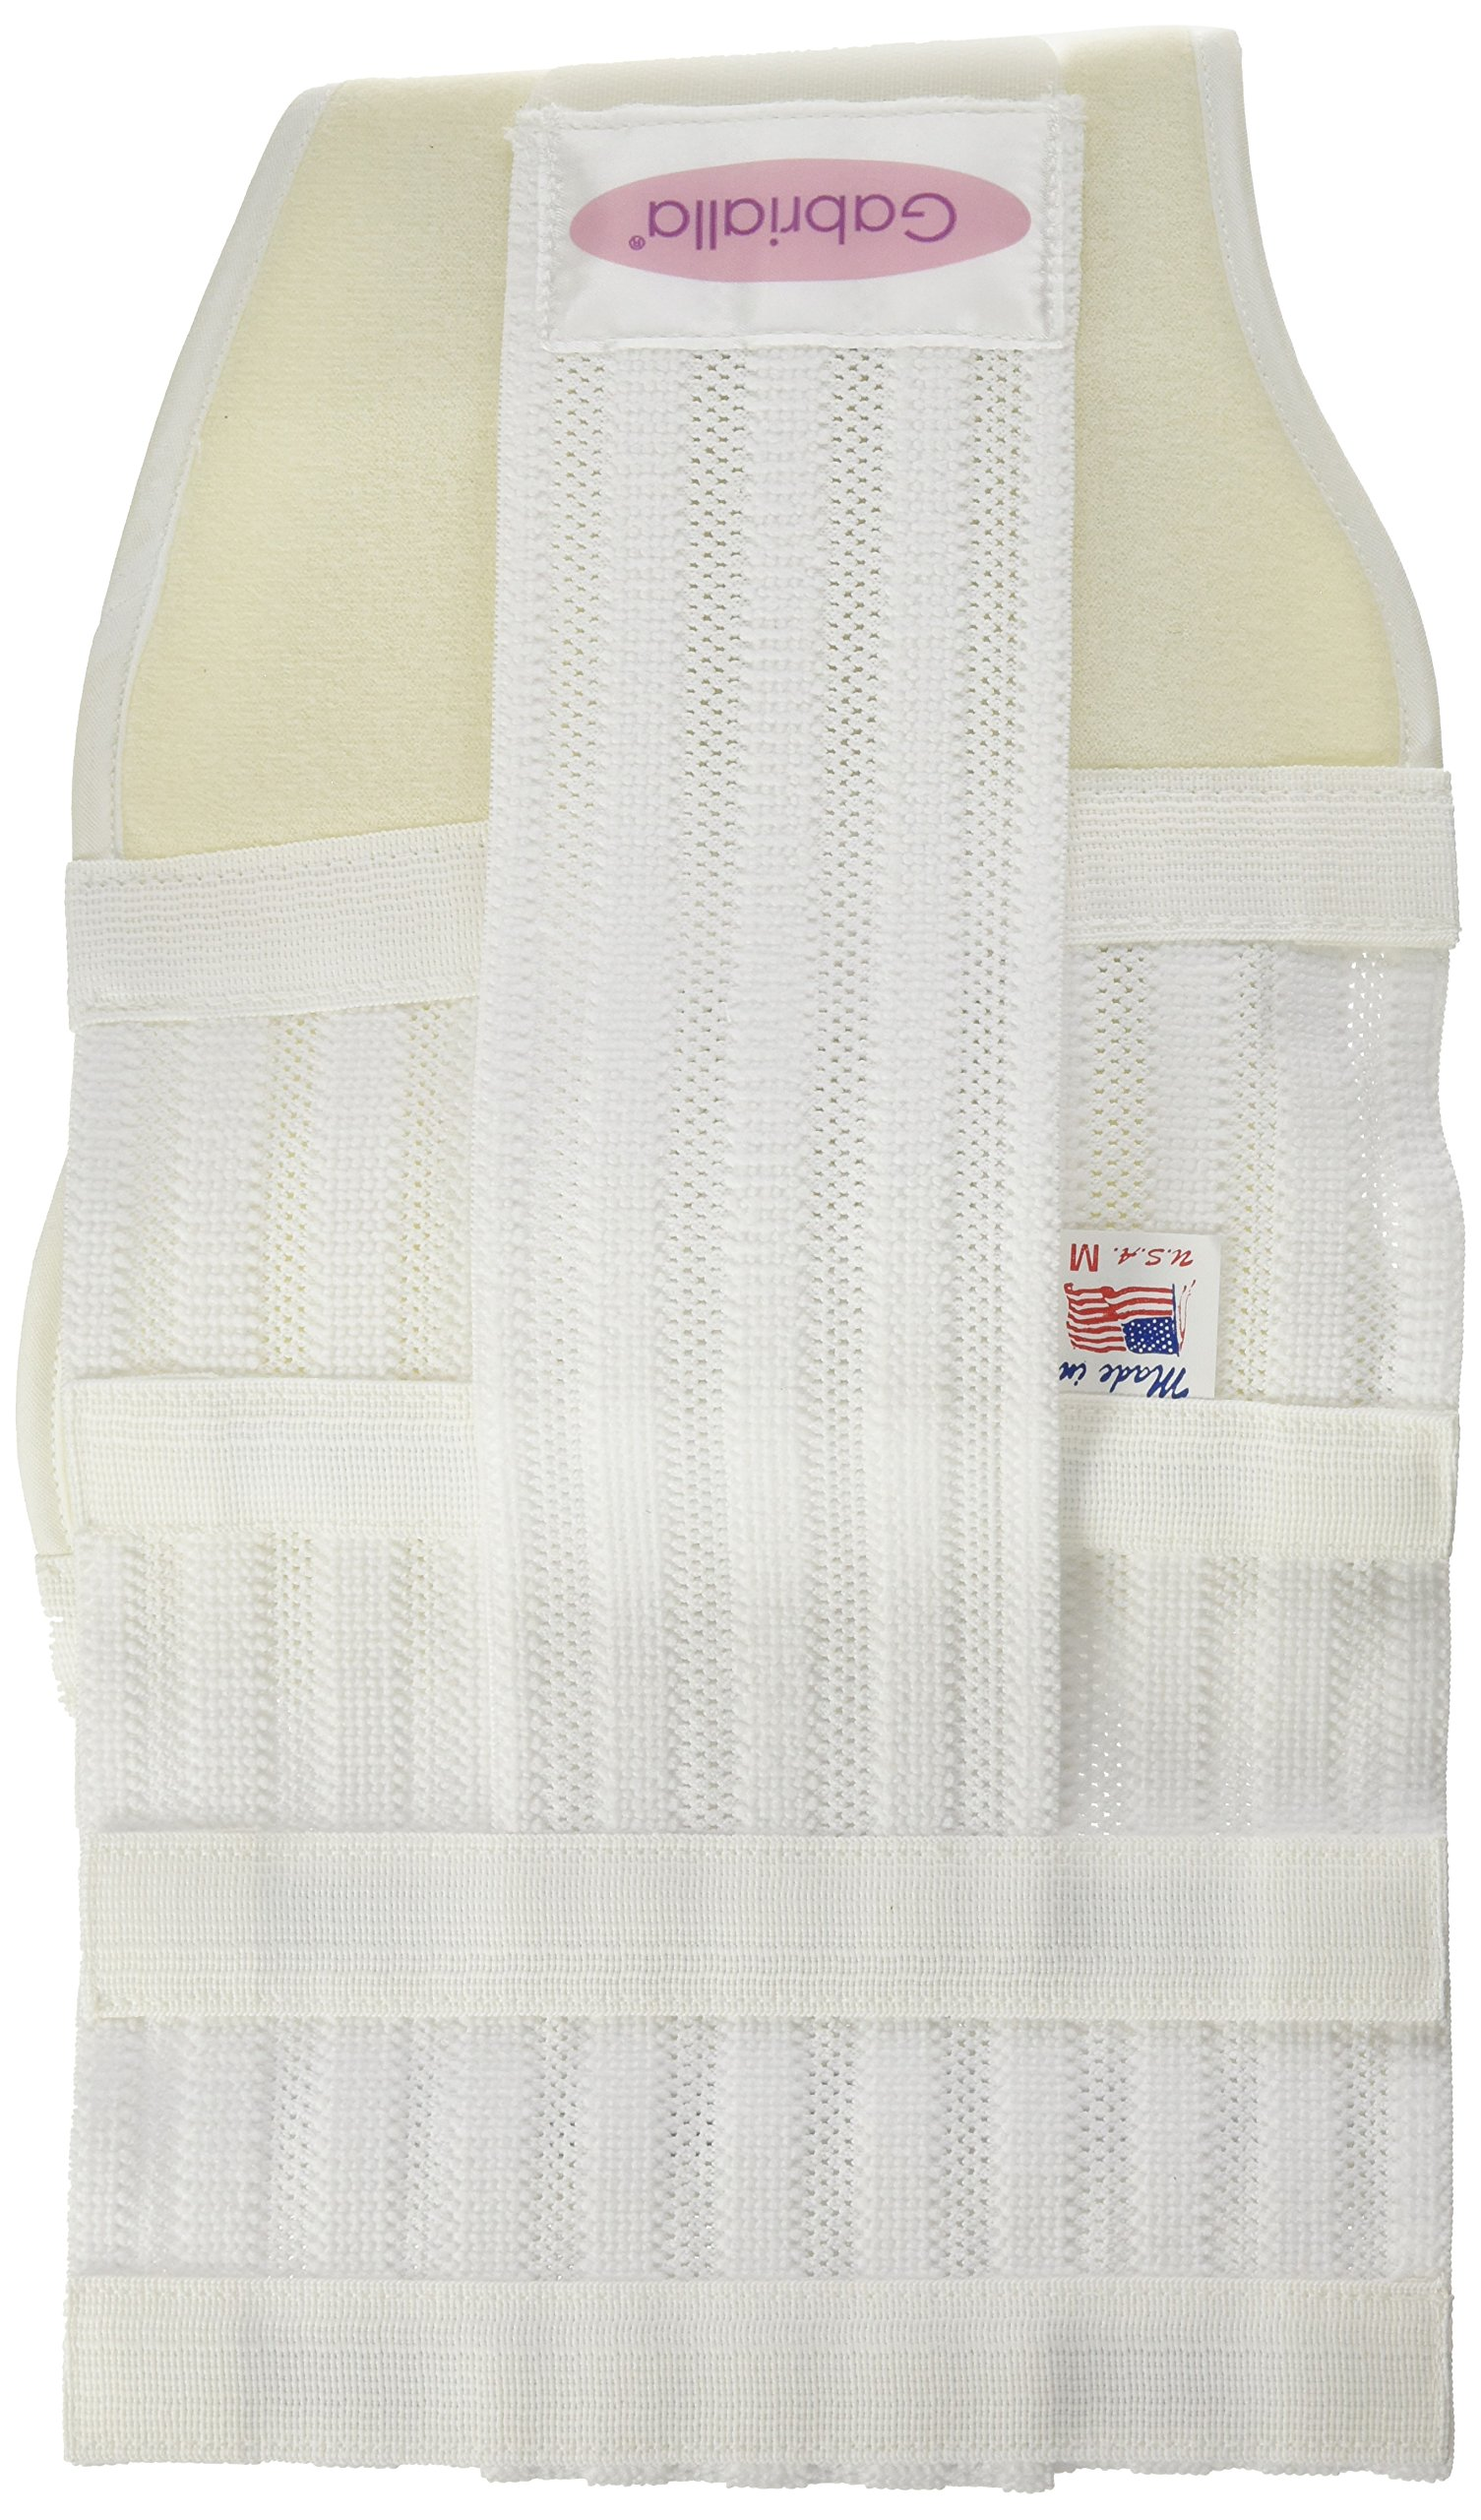 GABRIALLA Breathable Maternity/Back Support Belt For Multiples MS-99: White Medium by GABRIALLA (Image #1)